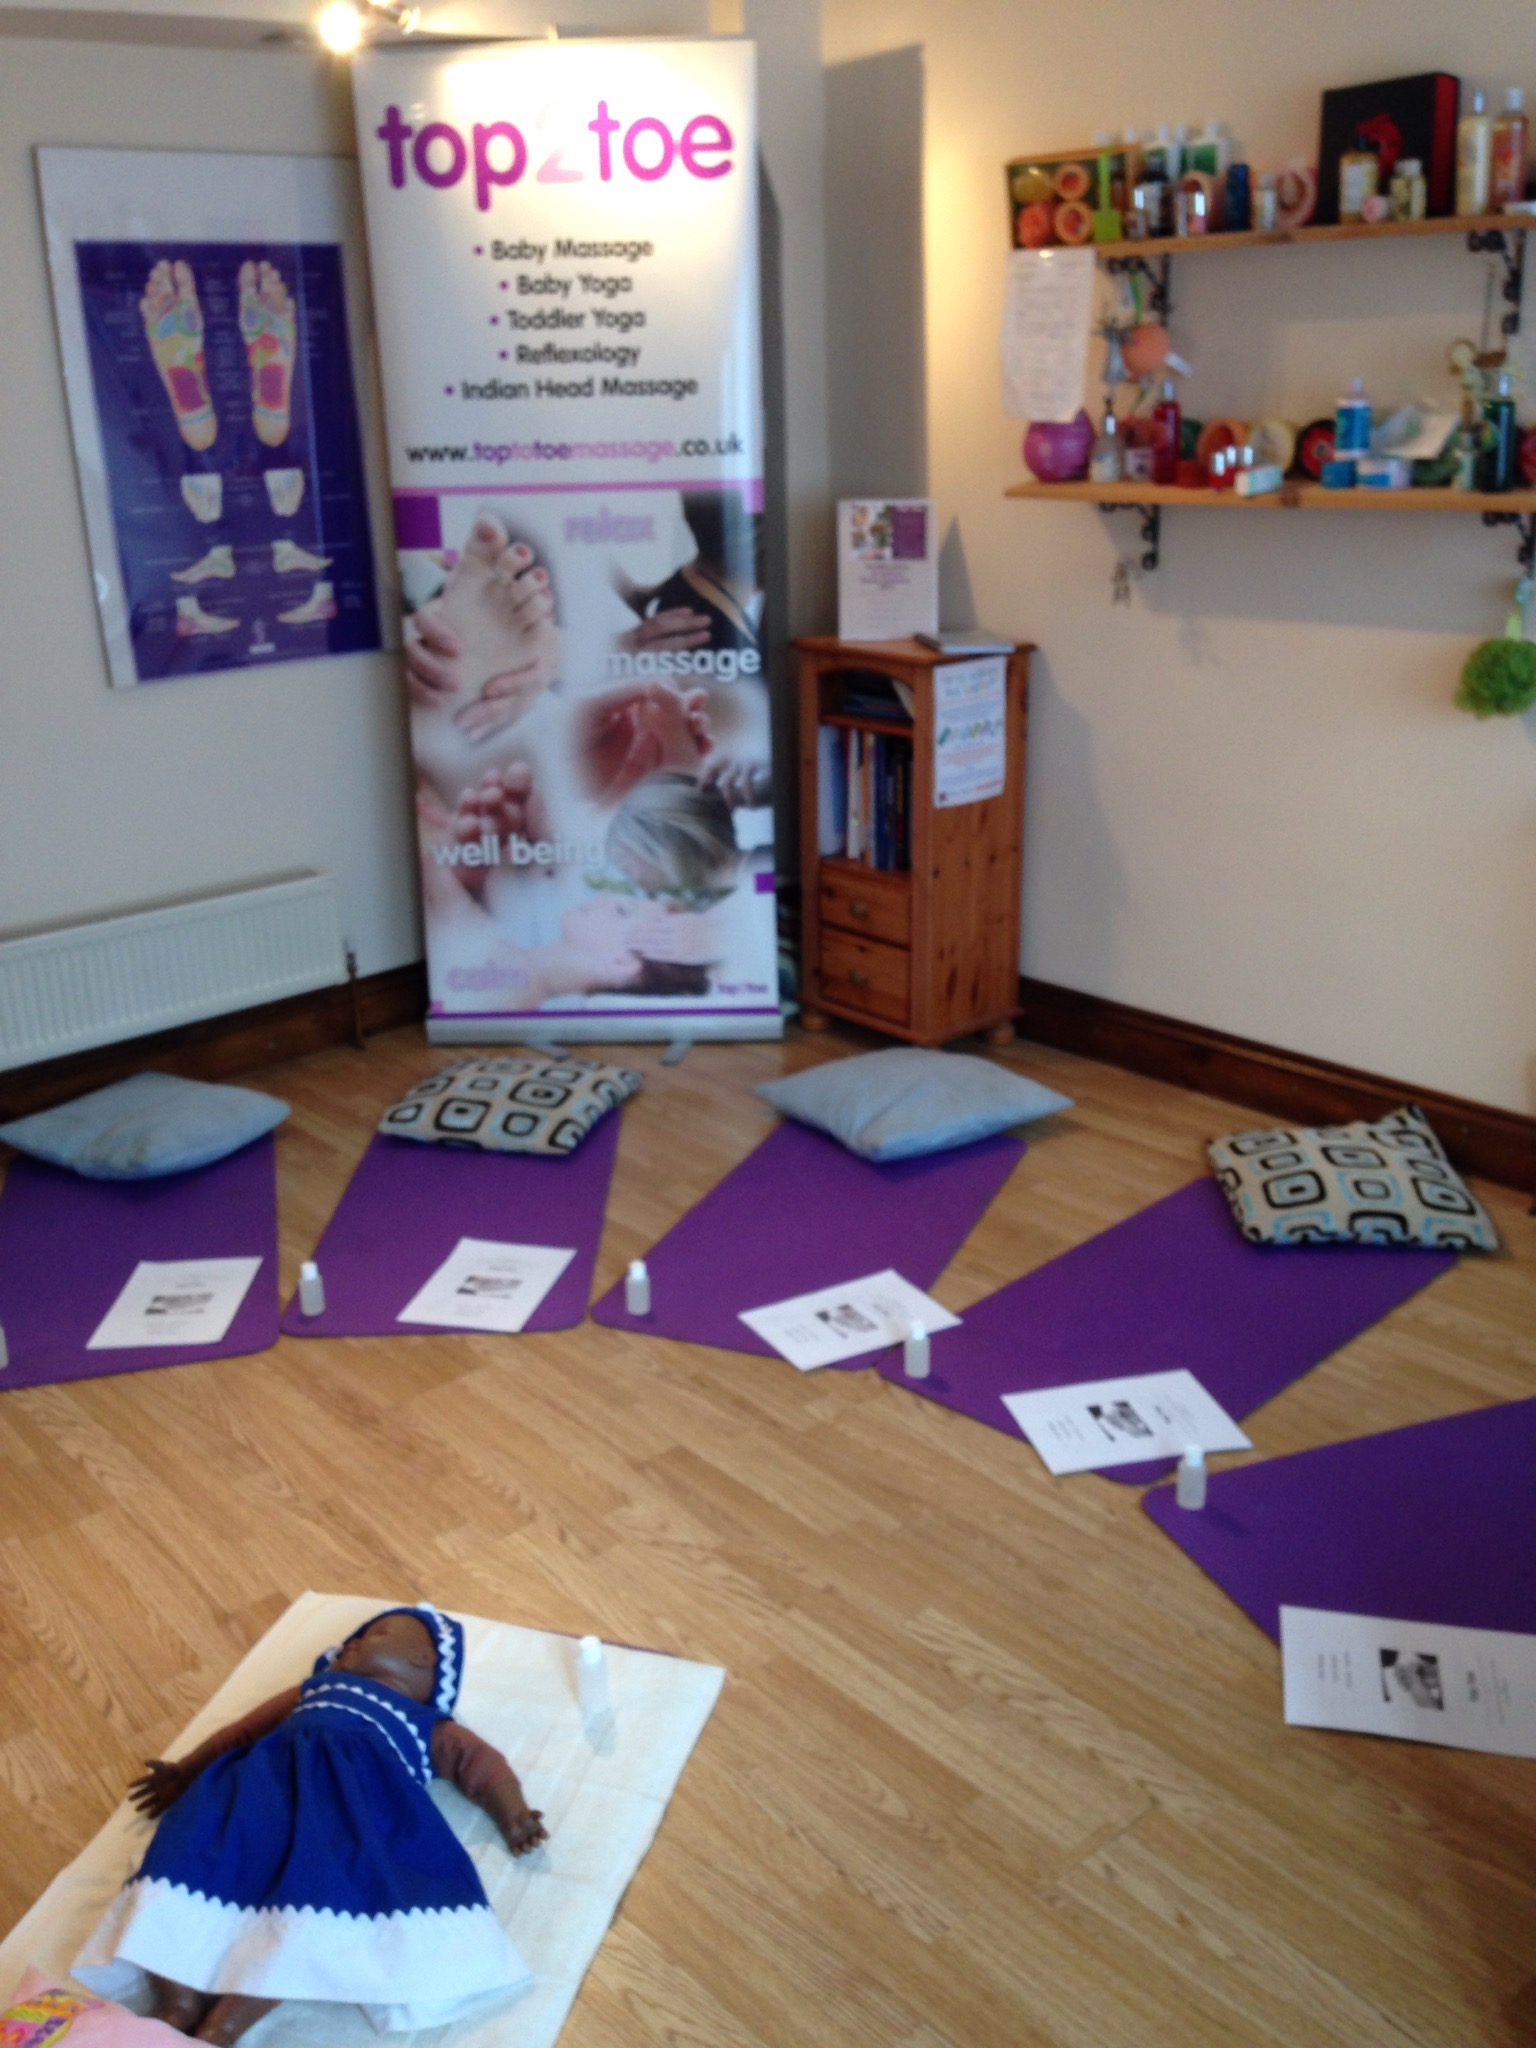 All set for Baby Massage classes..........